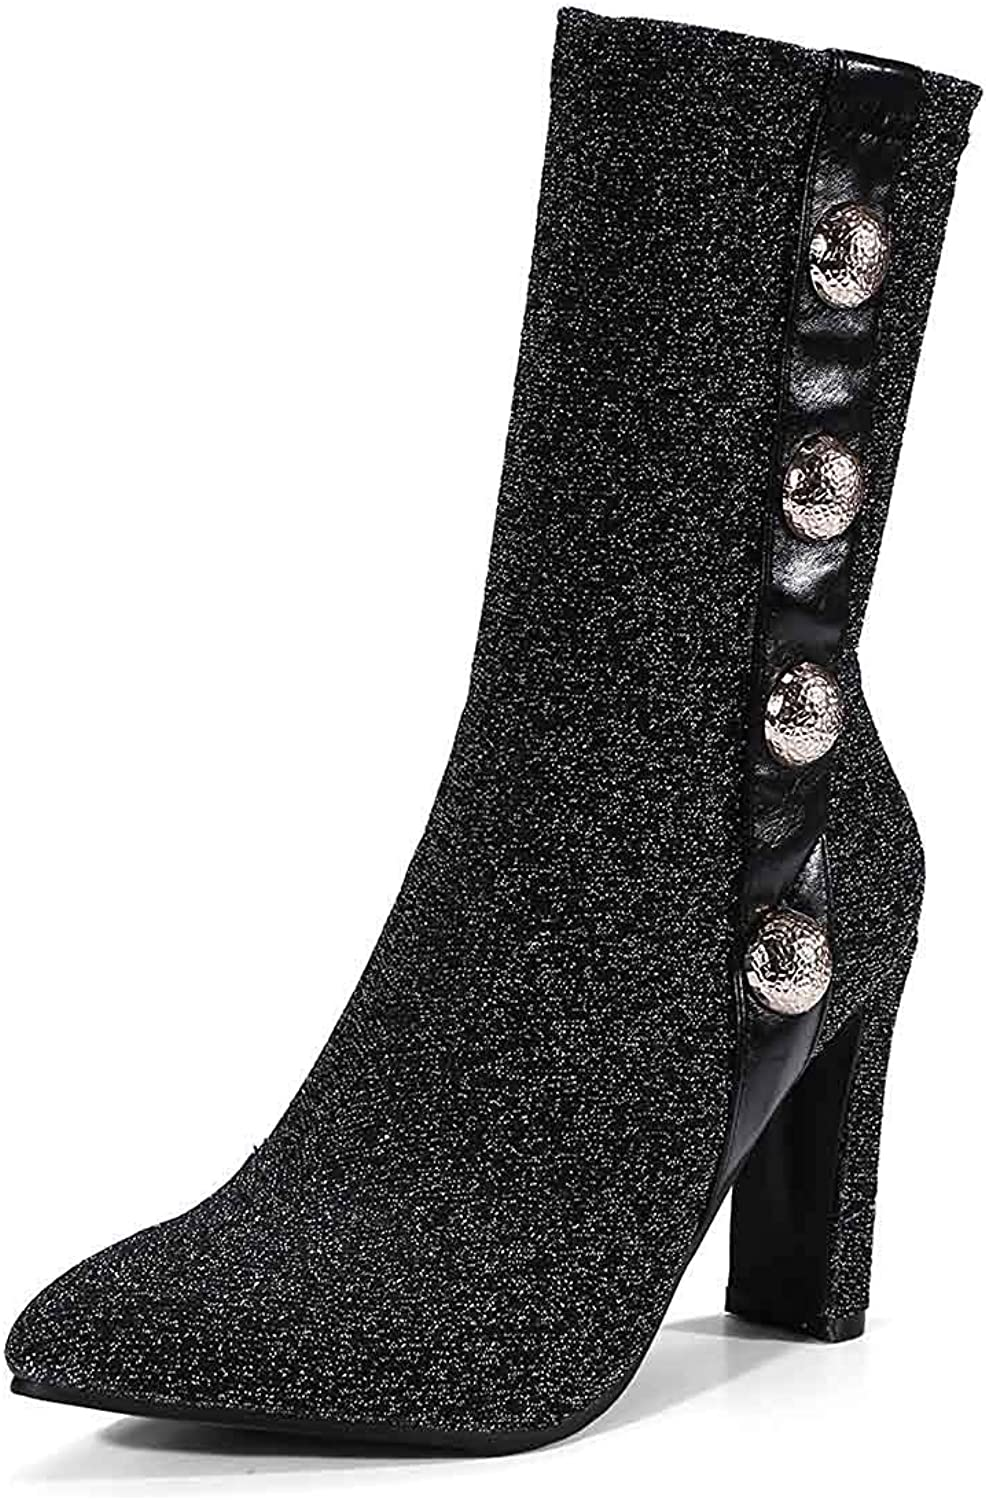 Unm Women's Stretchy Pointy Toe Mid Calf Boots - Outdoor Block High Heel - Dressy Beaded Pull On Half Boots